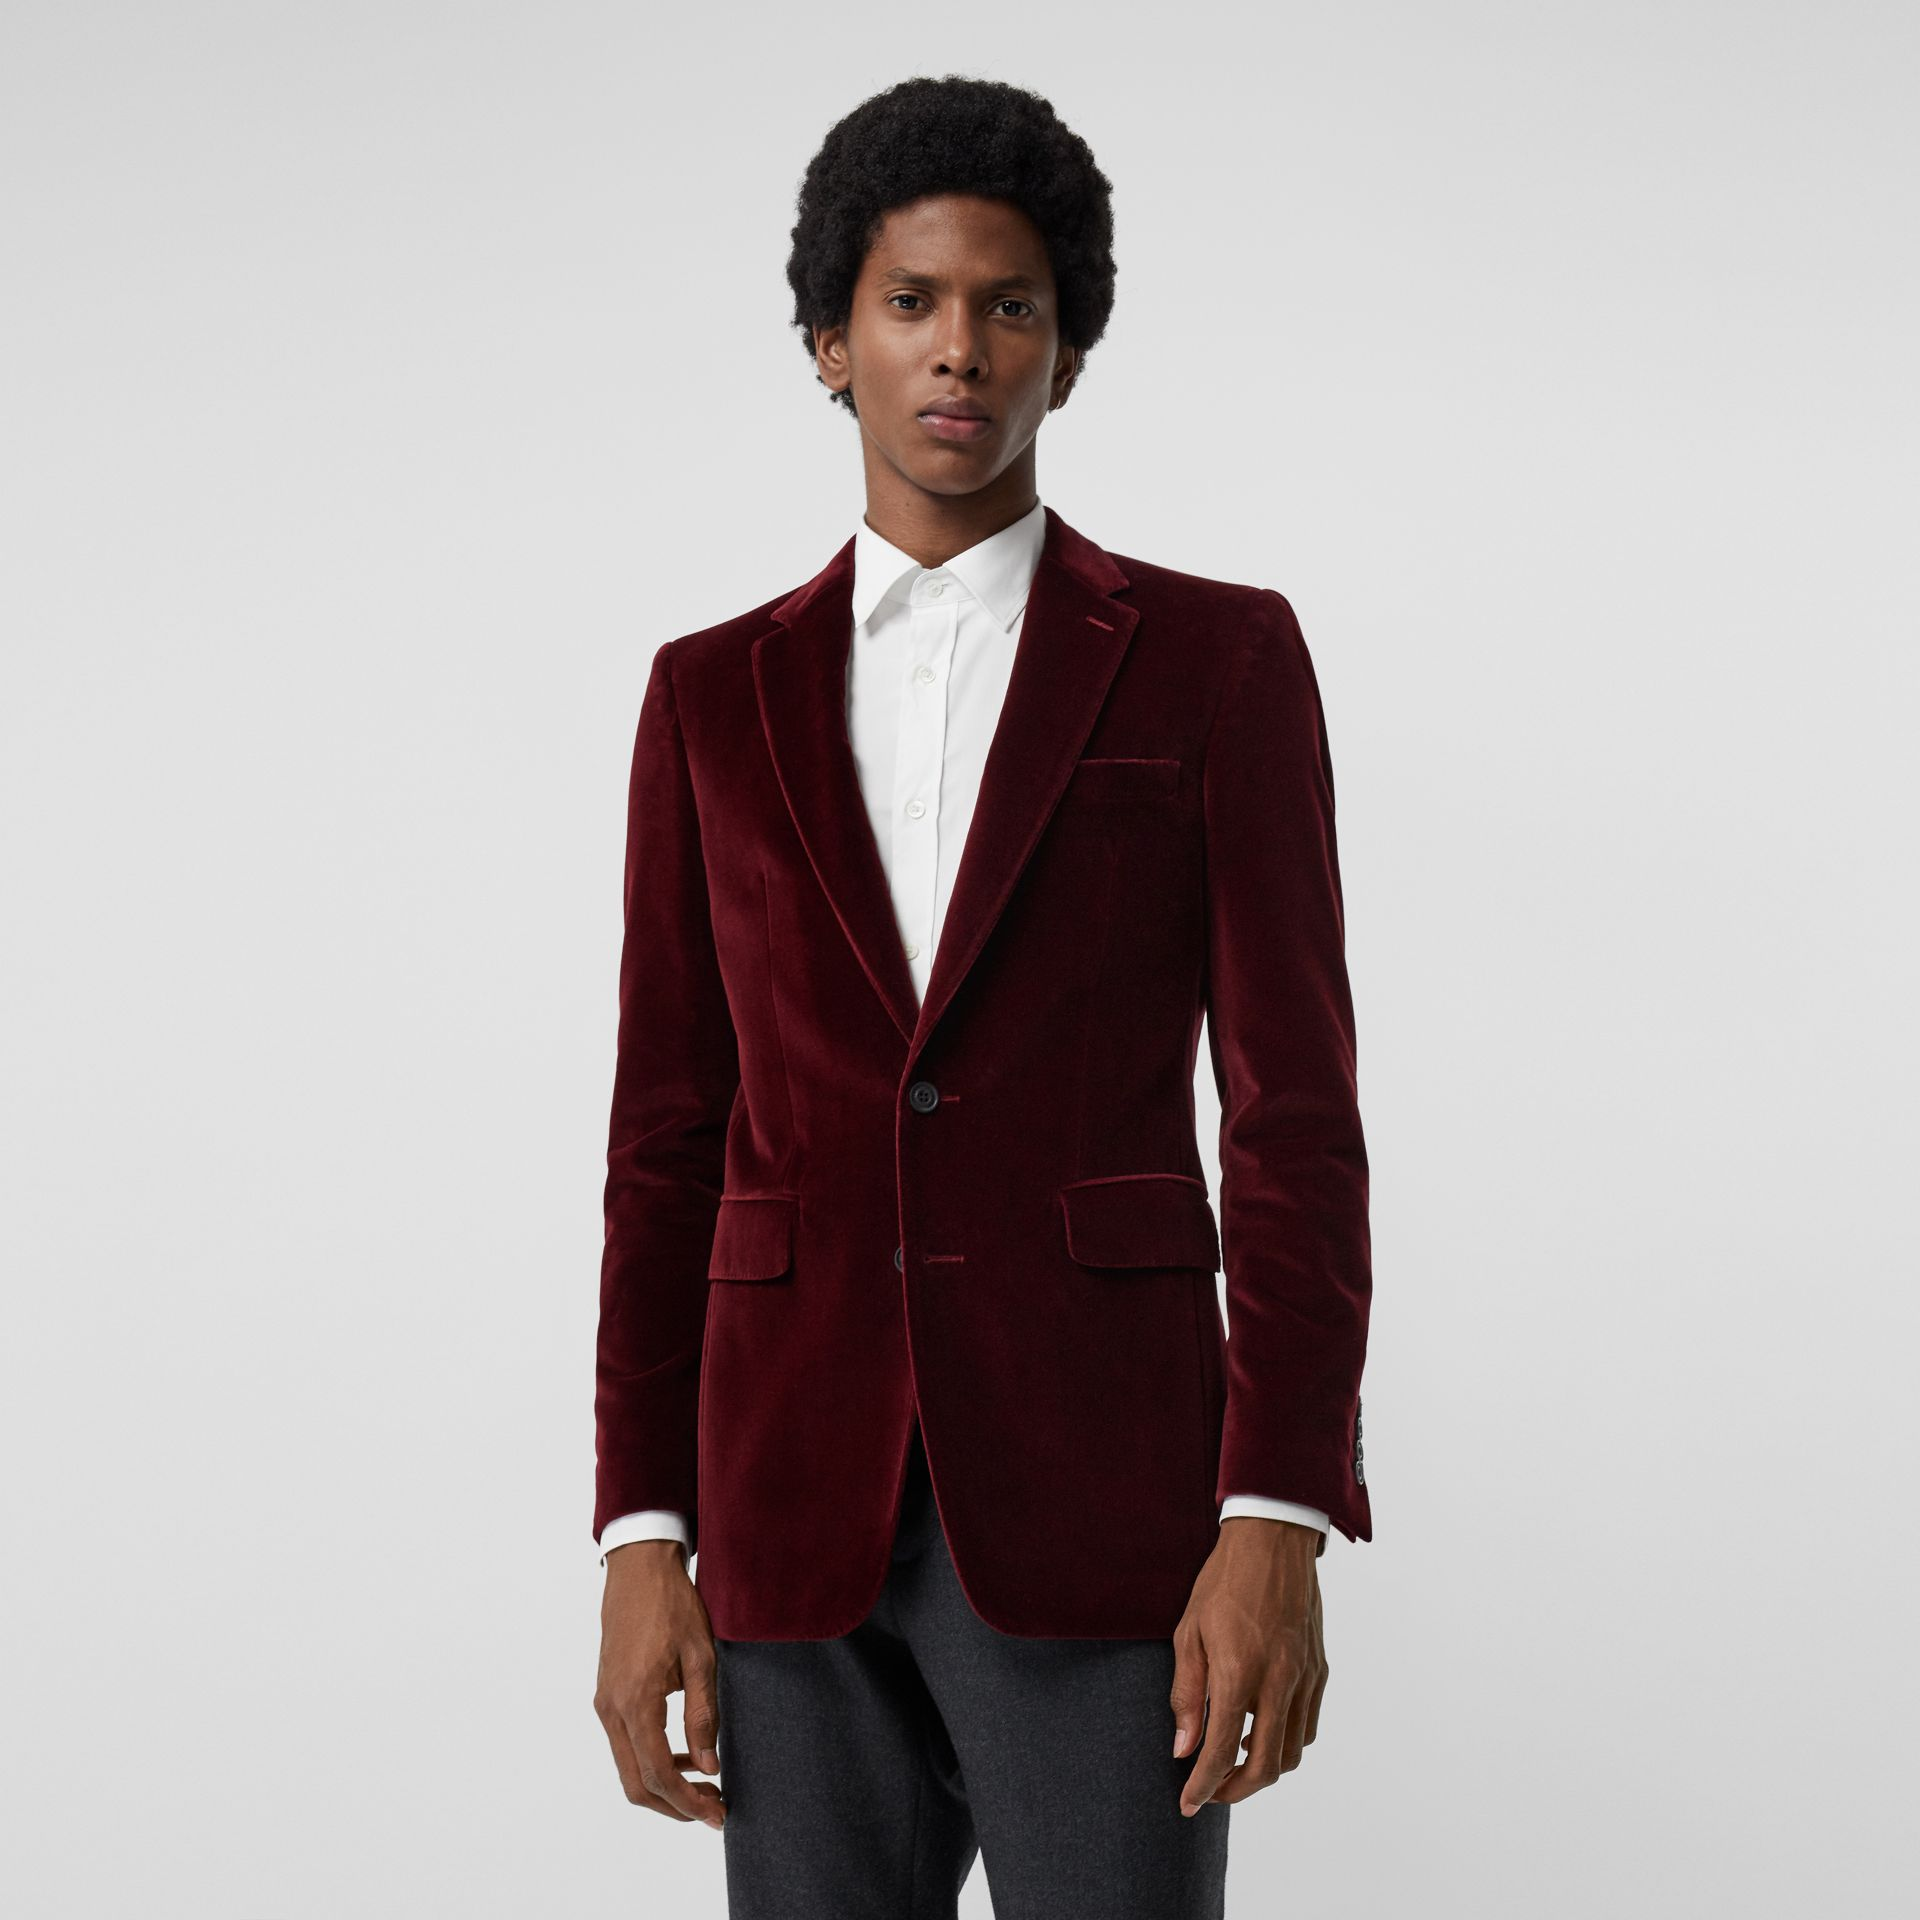 Classic Fit Velvet Tailored Jacket in Burgundy - Men | Burberry - gallery image 6